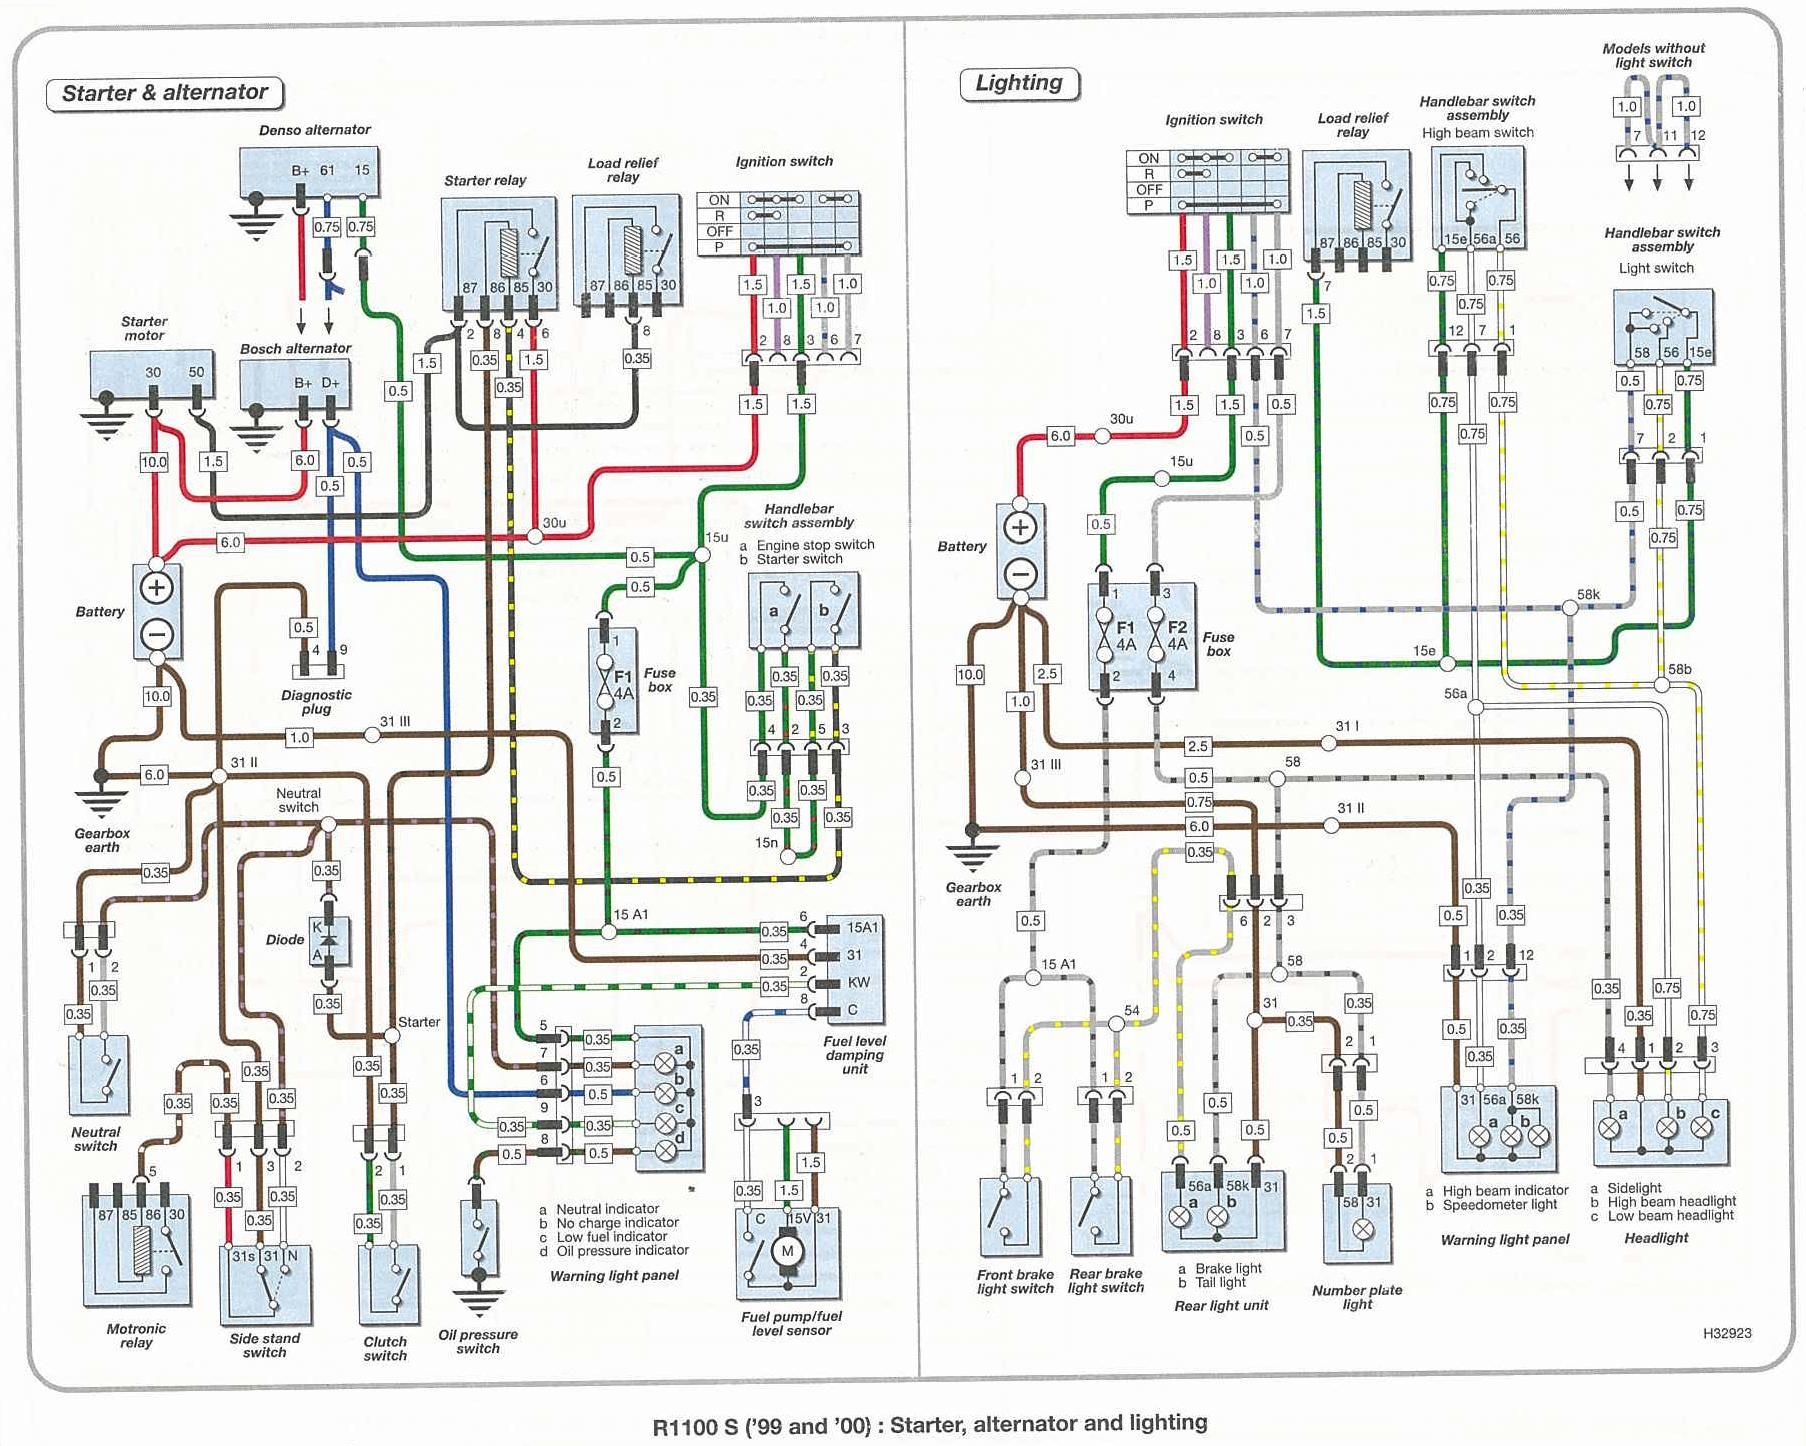 wiring02 bmw wiring diagram bmw wiring diagram mhhauto \u2022 wiring diagrams Electrical Wiring Diagrams at n-0.co